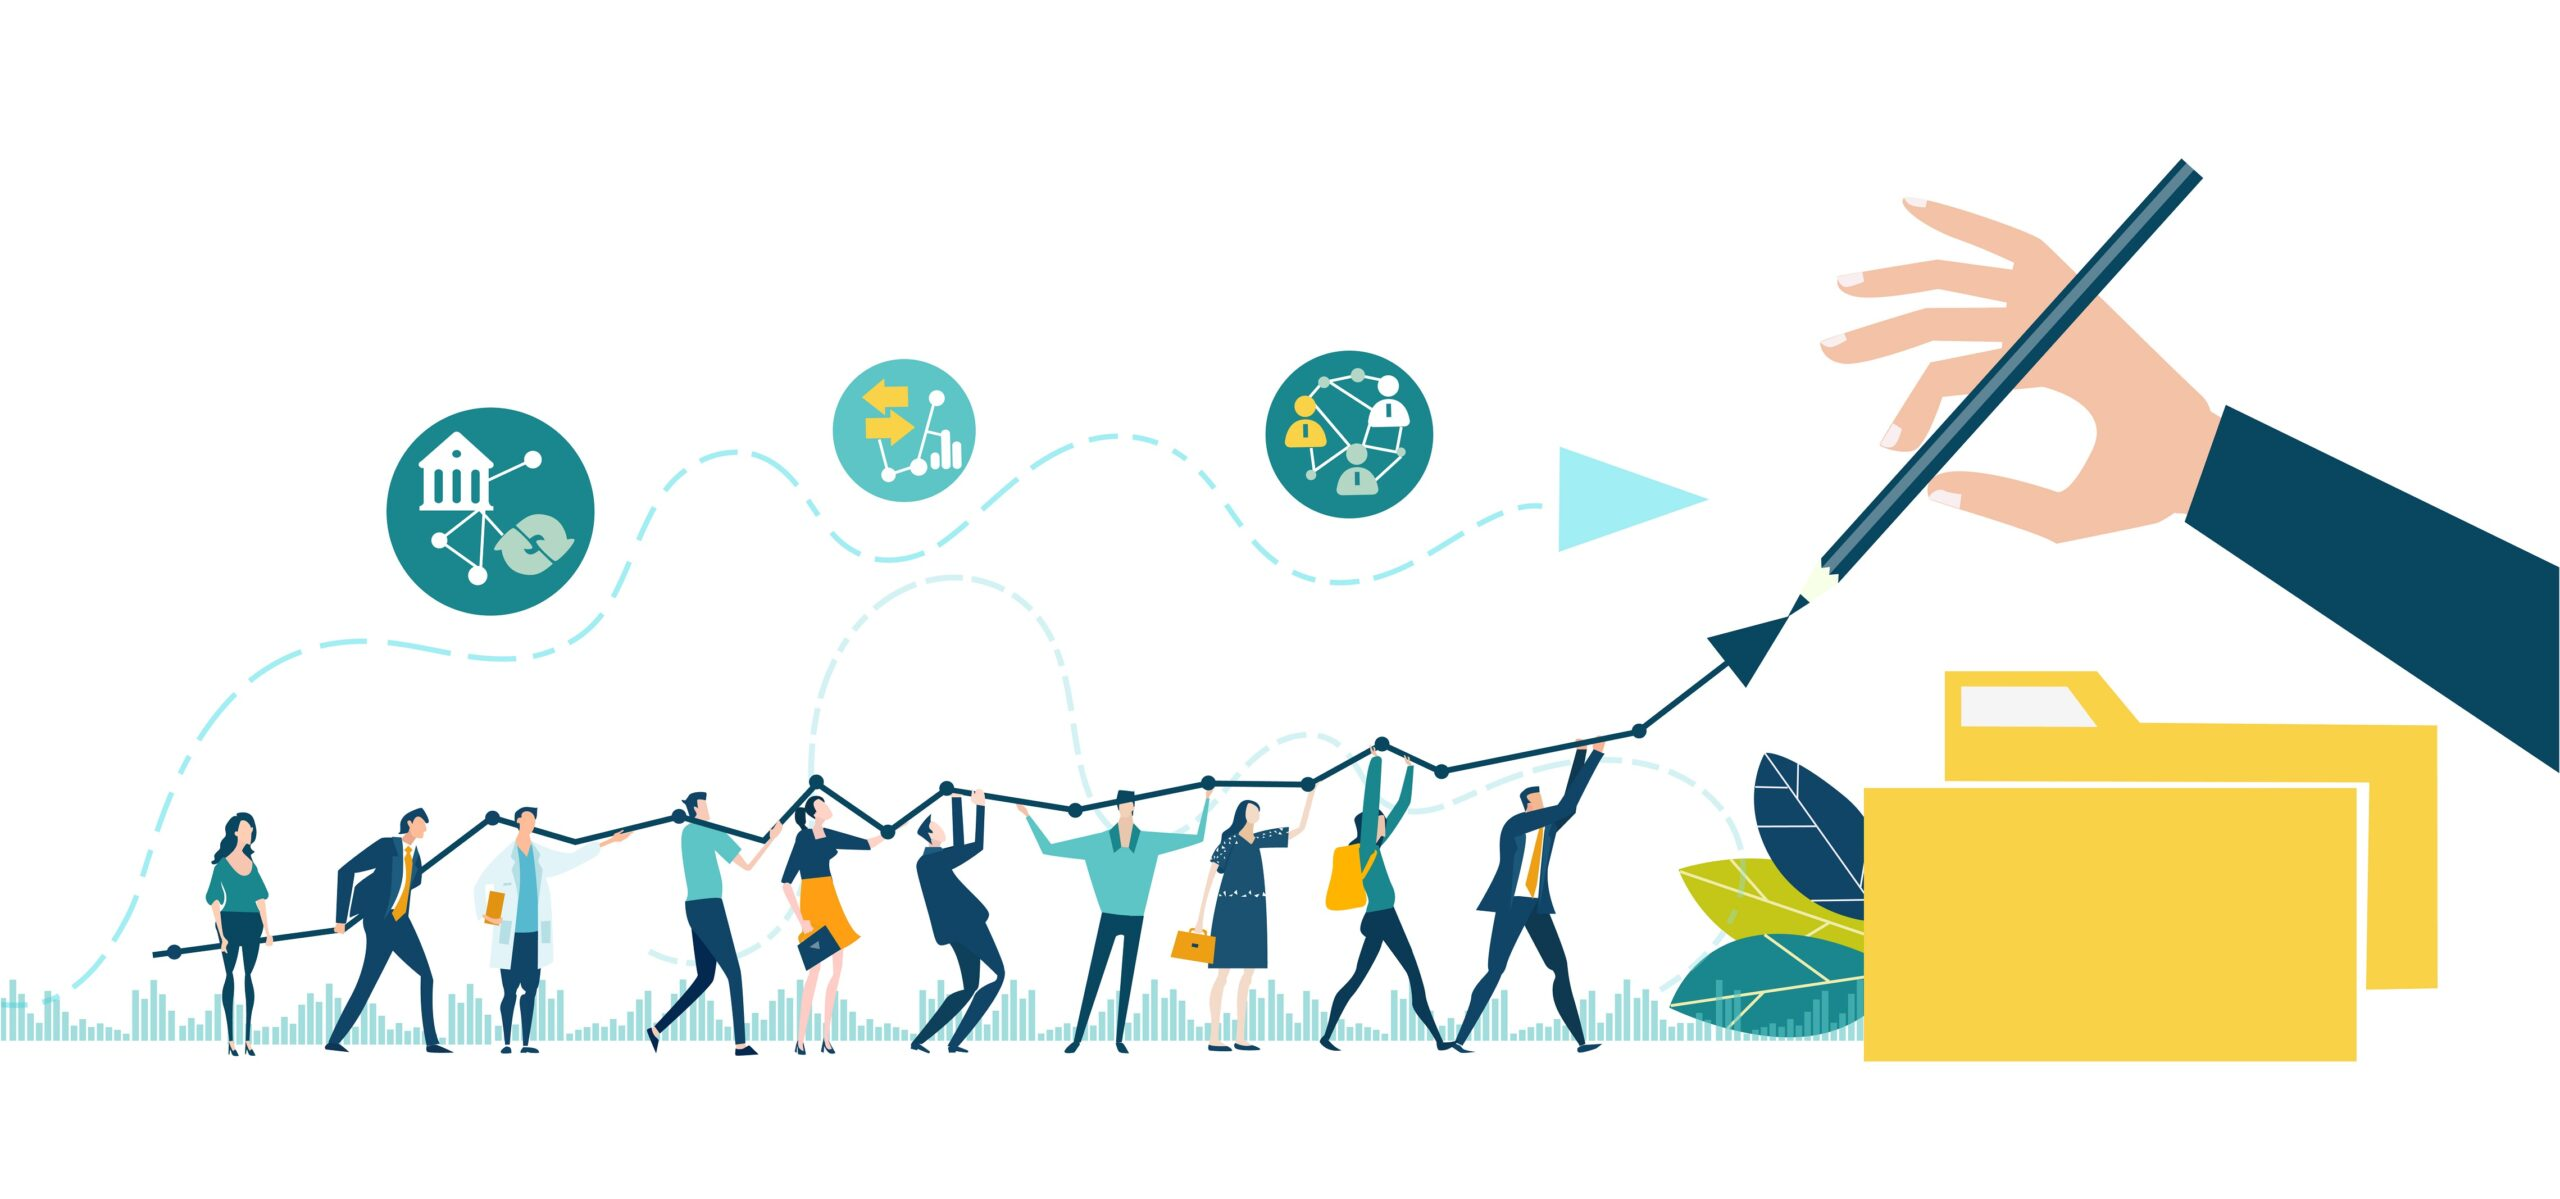 Businessman drawing the growth line, success, support and developing. Business people. team walking and holding the arrow. Business concept illustration.